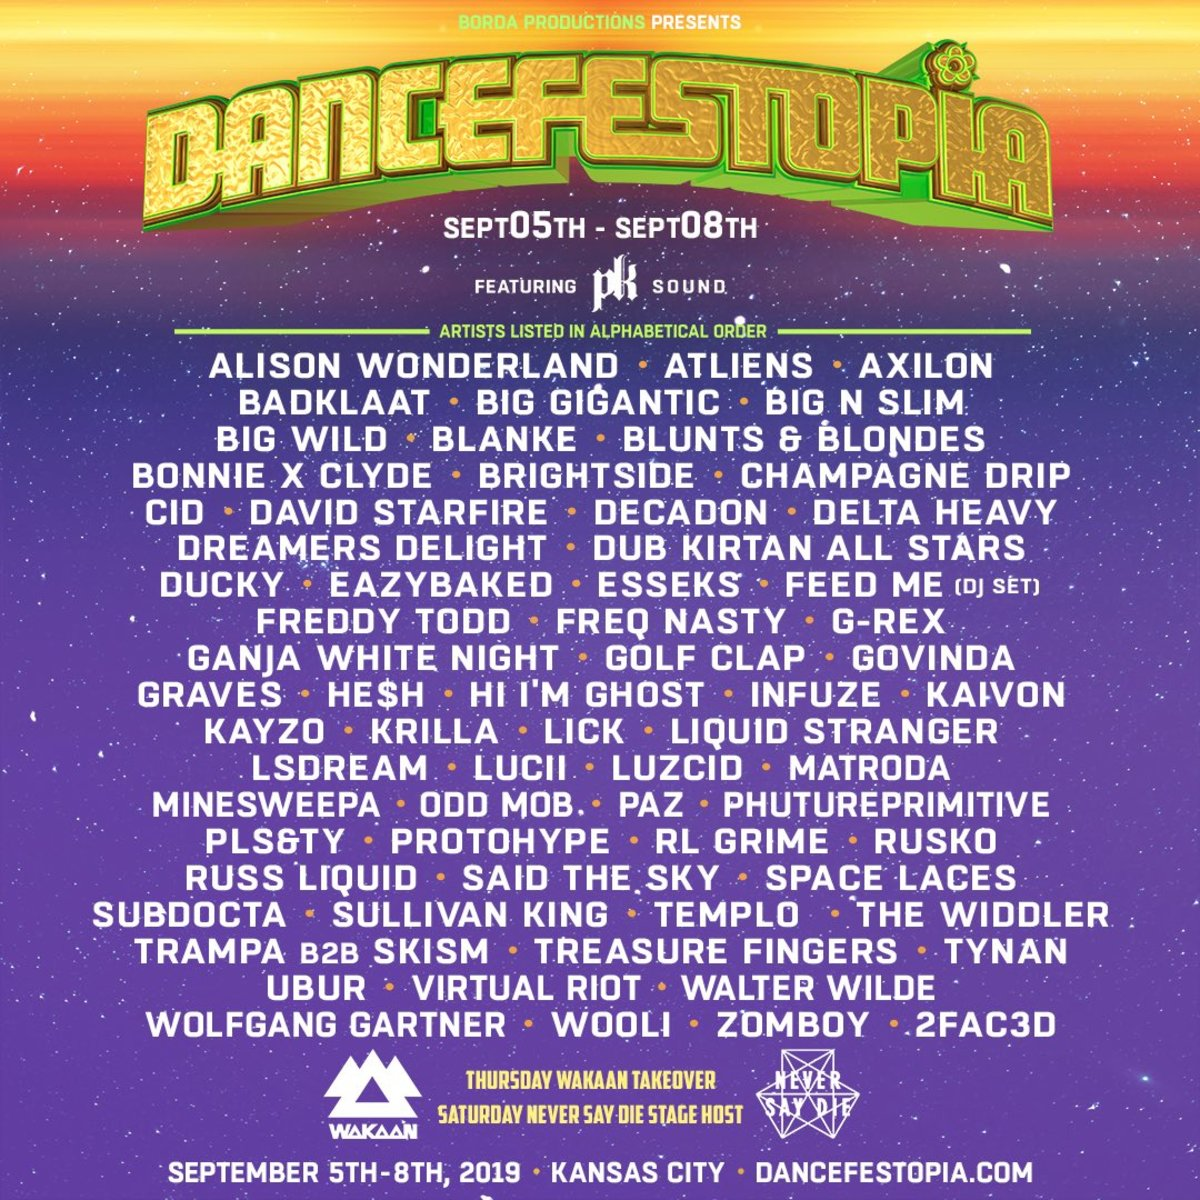 The lineup flyer for Dancefestopia 2019, including Alison Wonderland, Big Gigantic, Rusko, Kayzo and more.